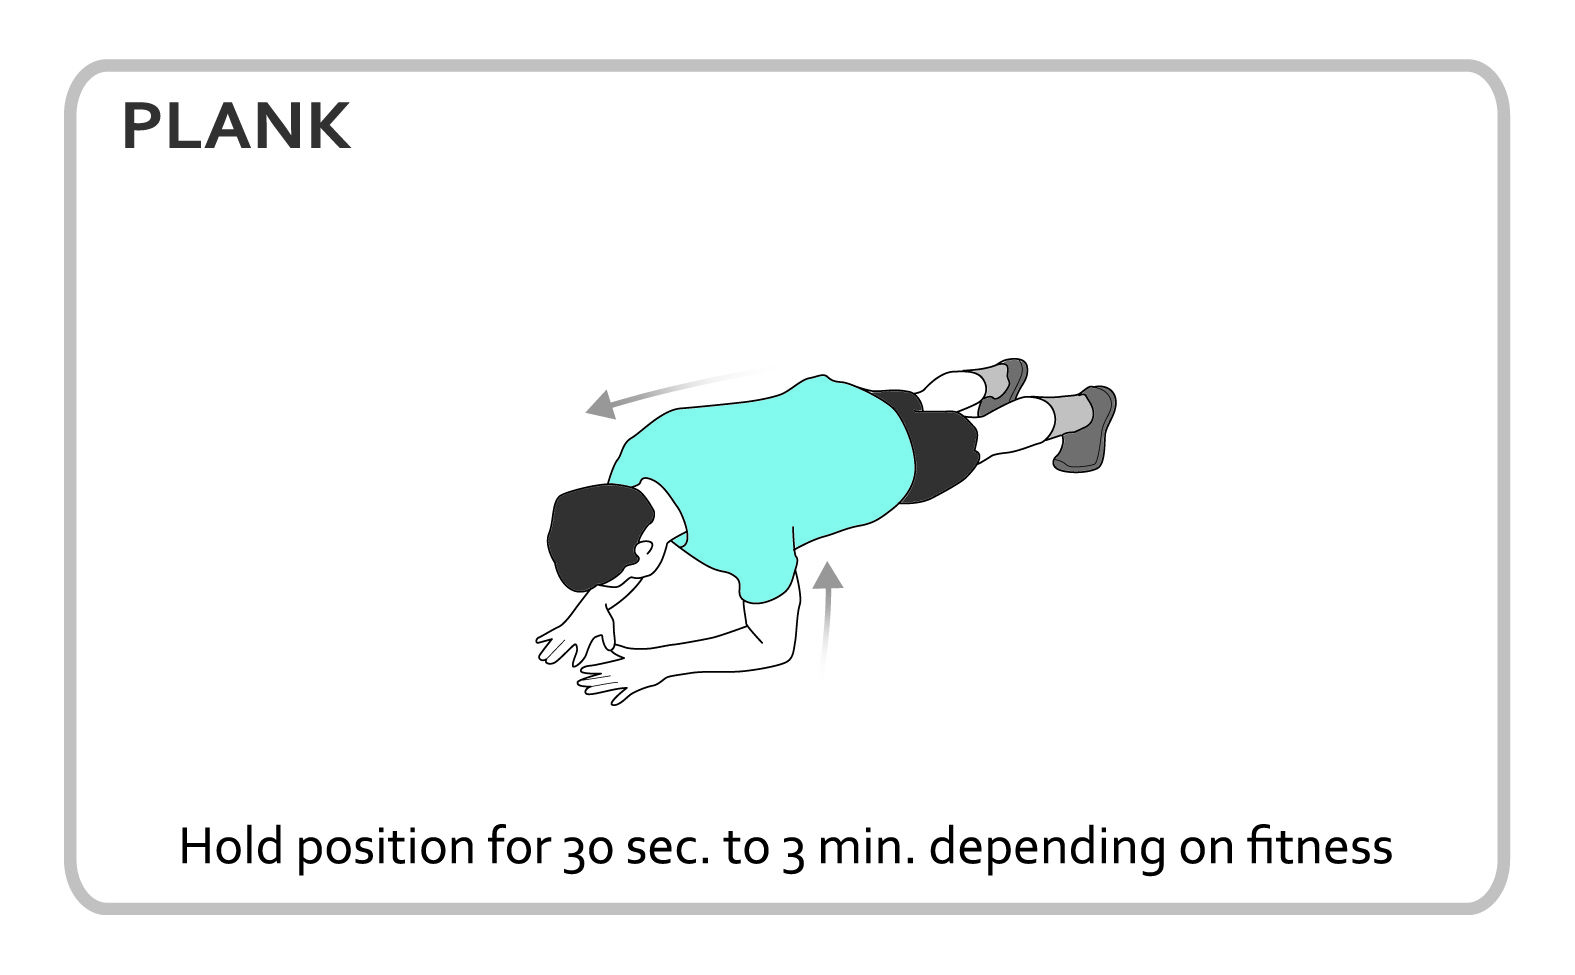 Plank exercise diagram core personal fitness workout personal plank exercise diagram core personal fitness workout pooptronica Gallery